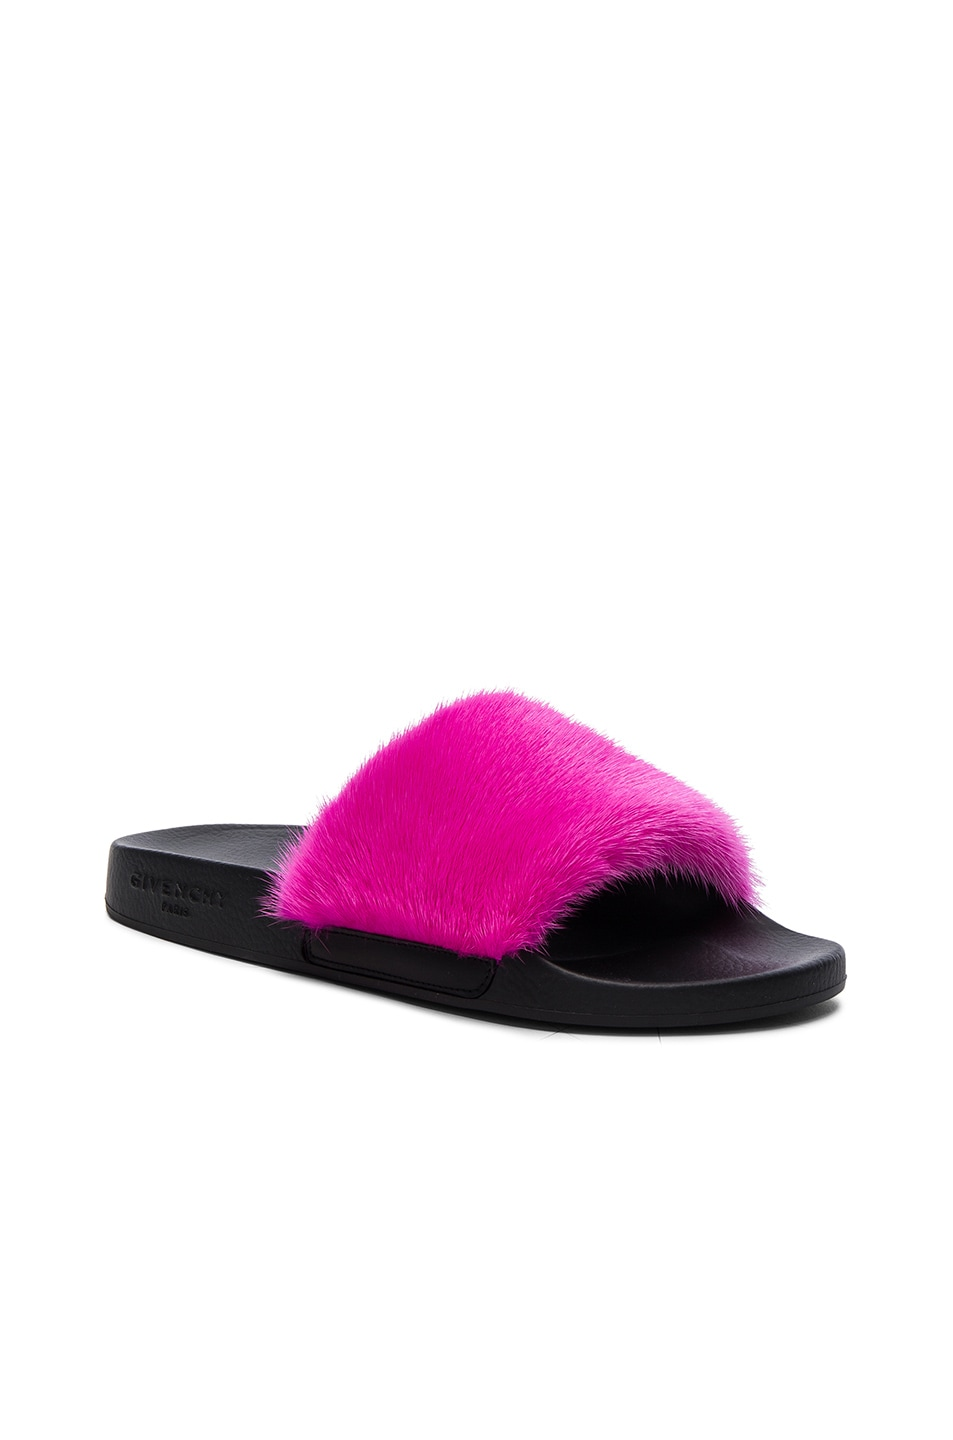 Image 2 of Givenchy Mink Fur Slides in Fuchsia